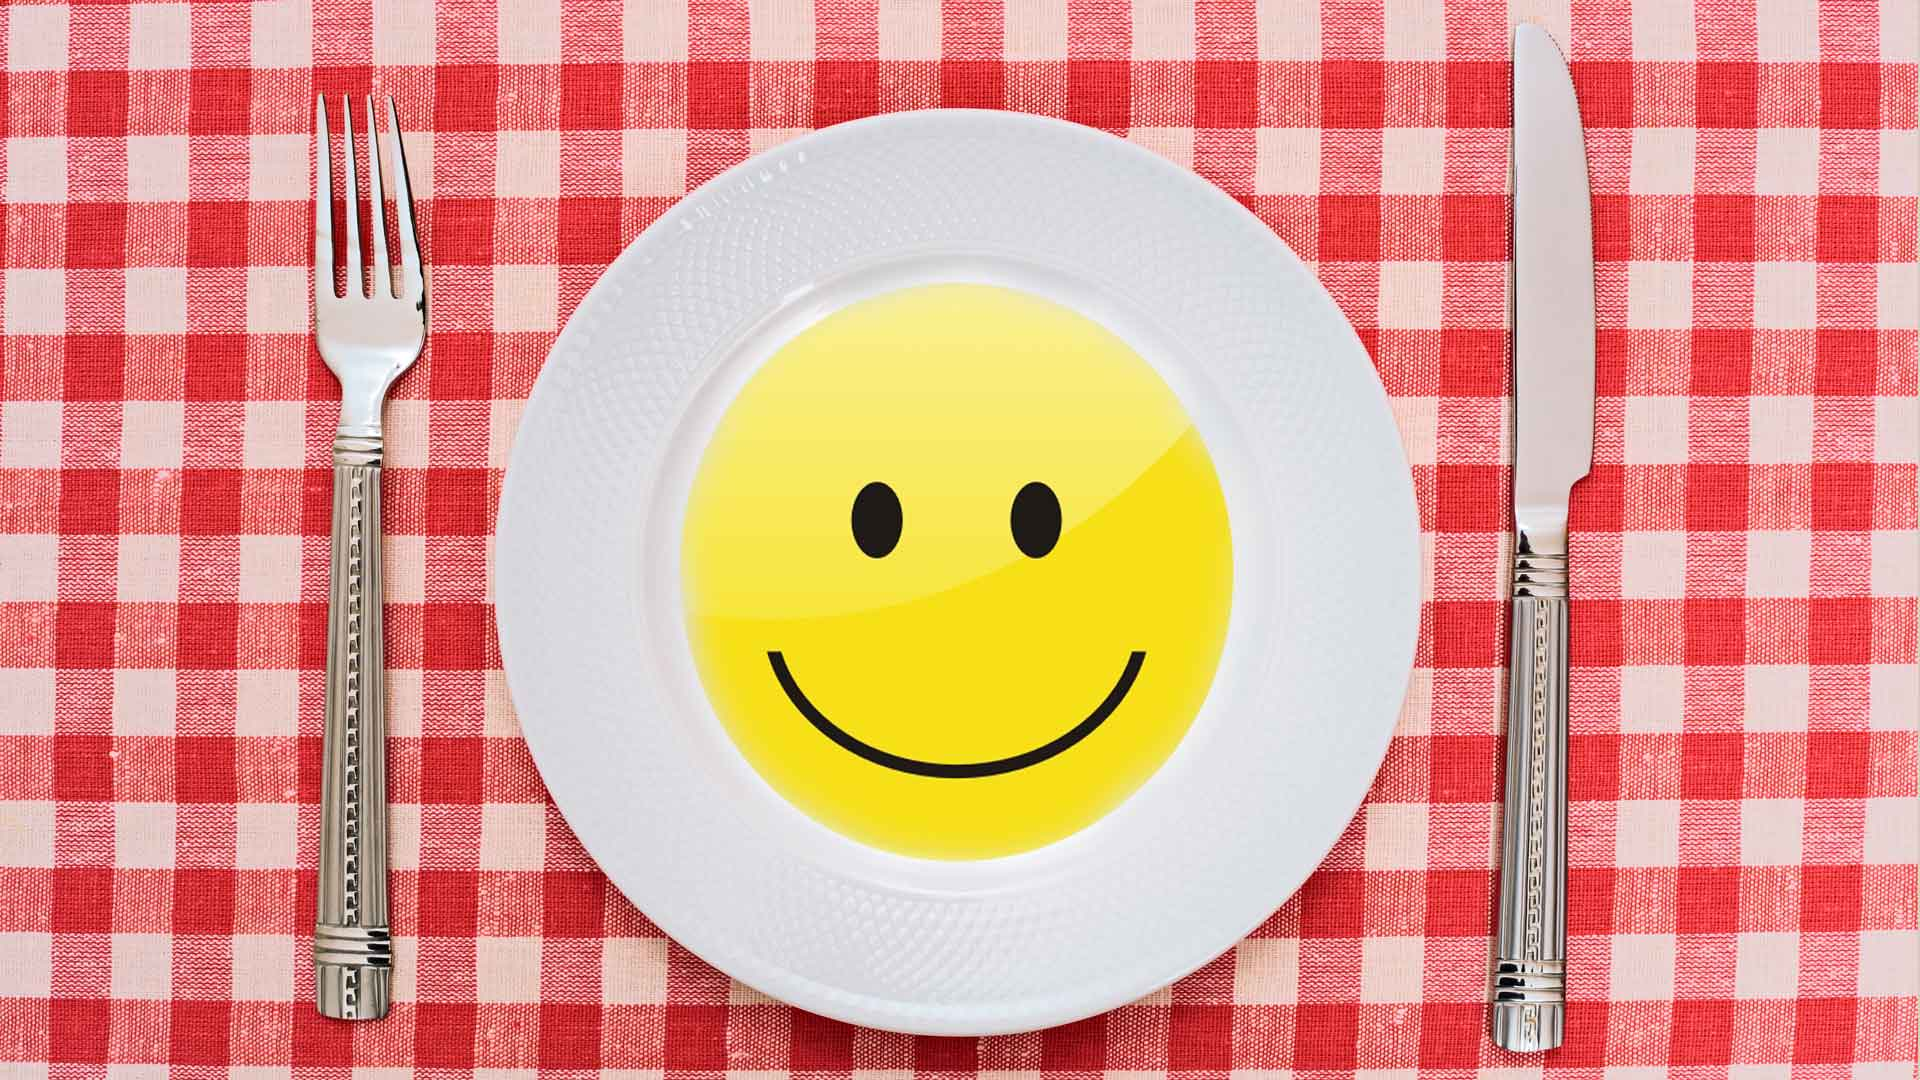 learning and development at lunchtime - smiling plate on dinner cloth